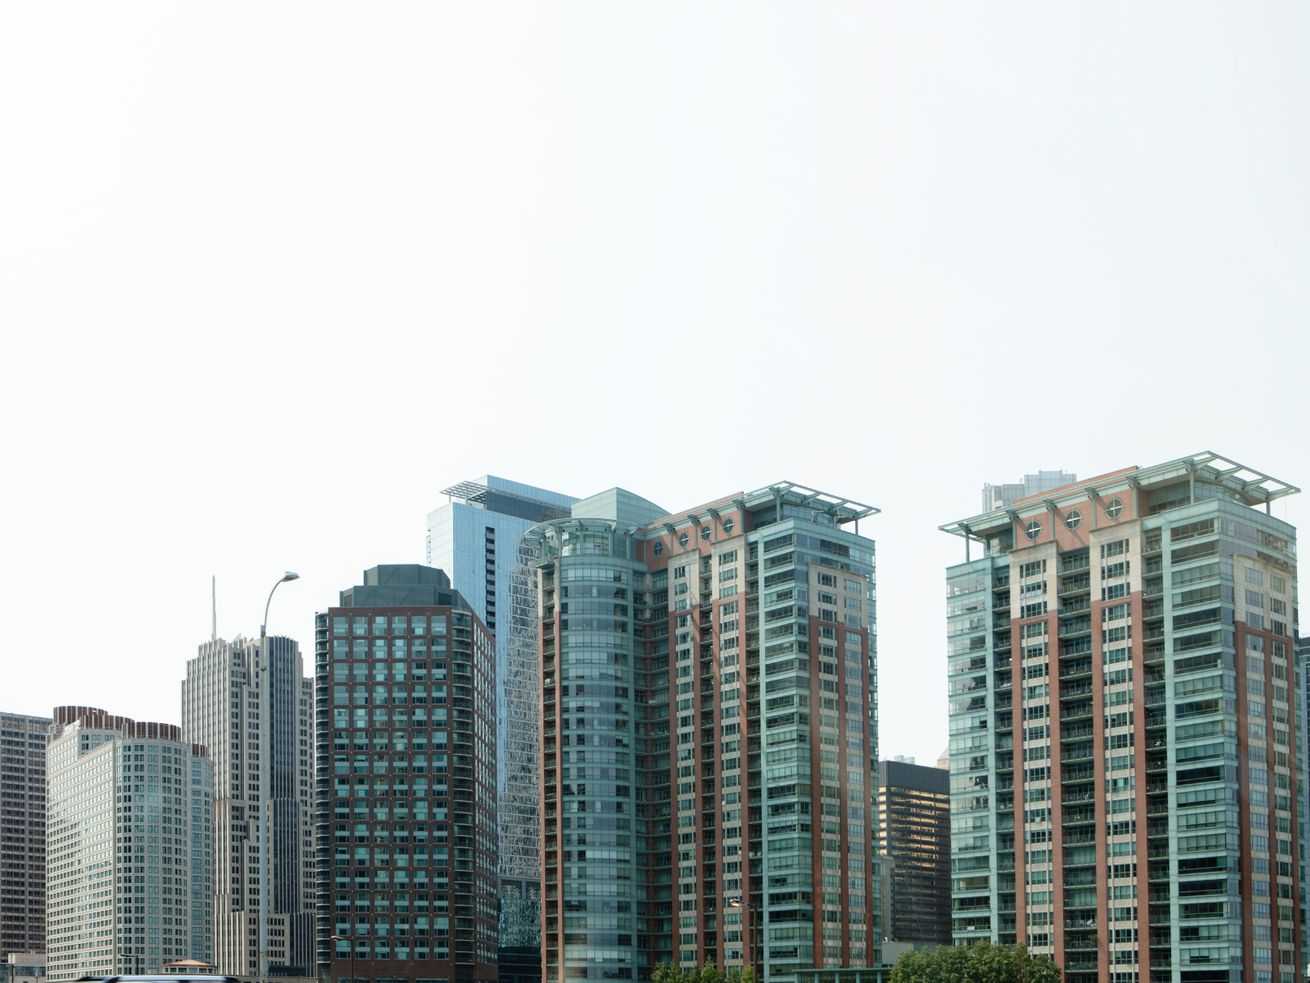 A view of the tops of high-rises in downtown Chicago.